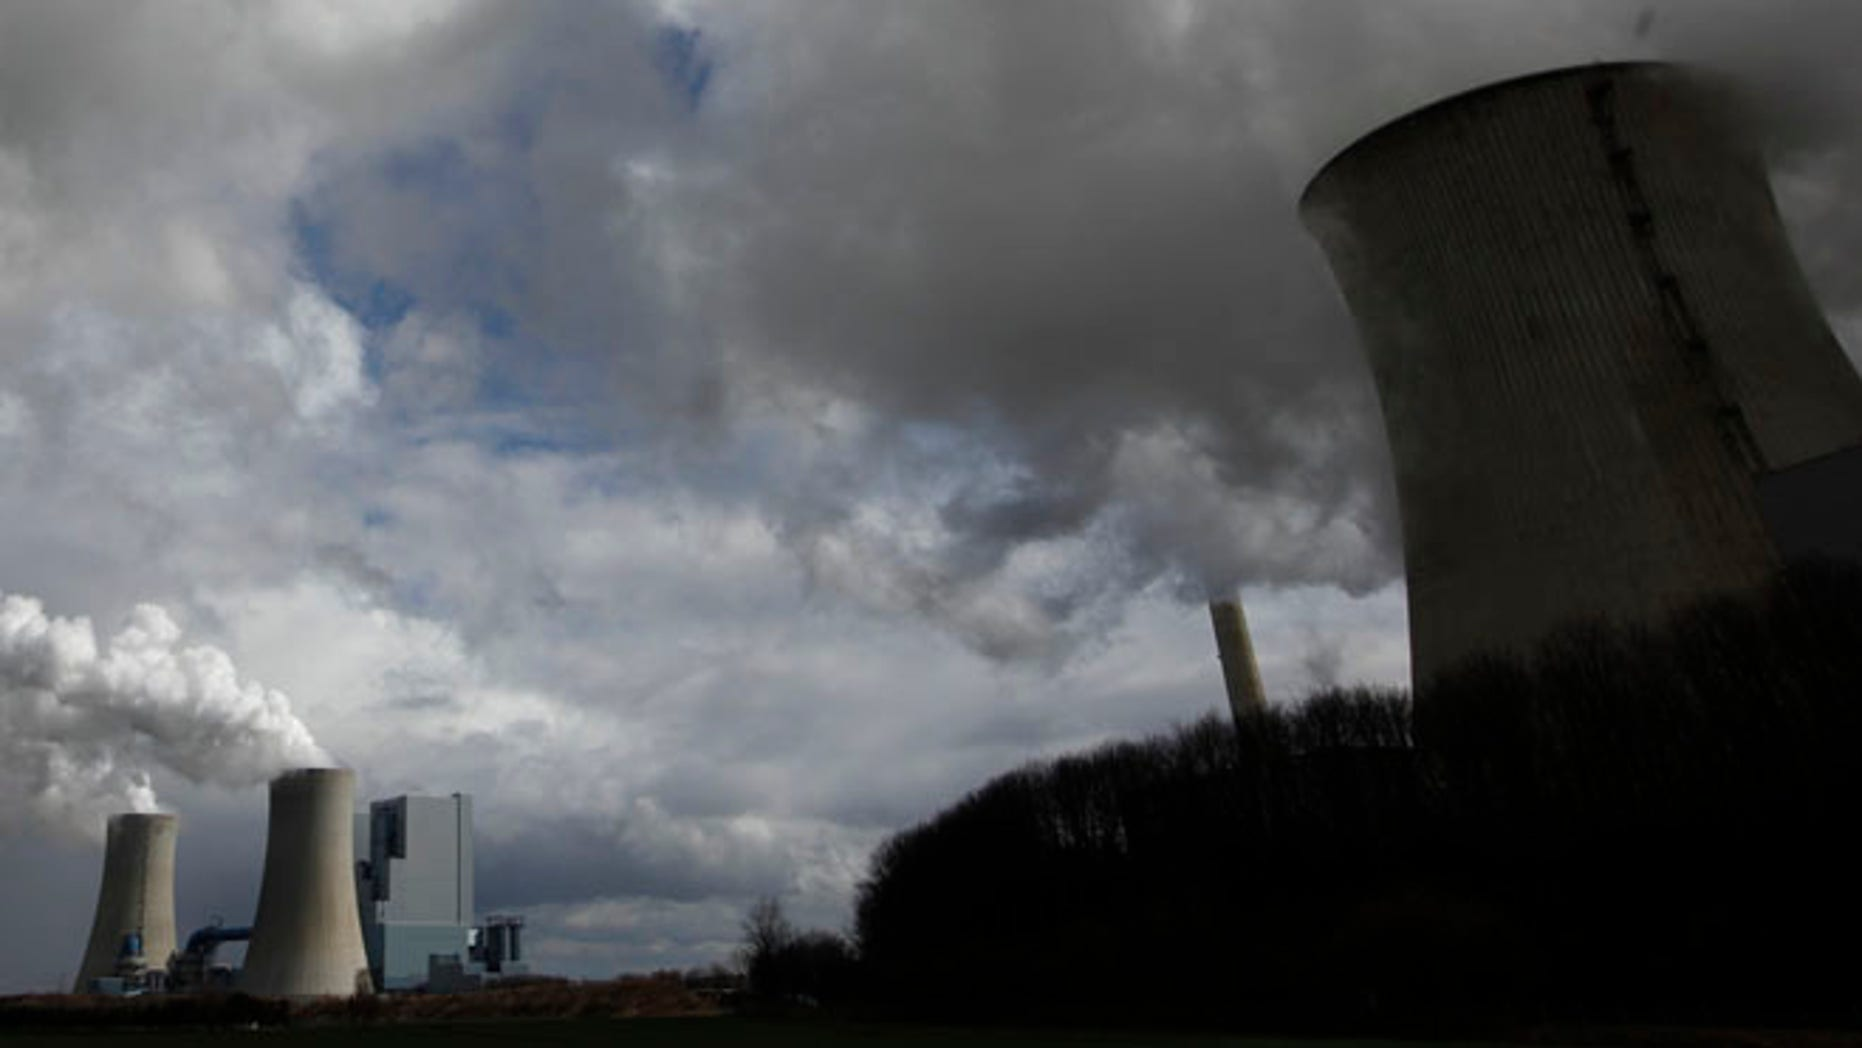 This file image shows steam rising from a coal power plant.